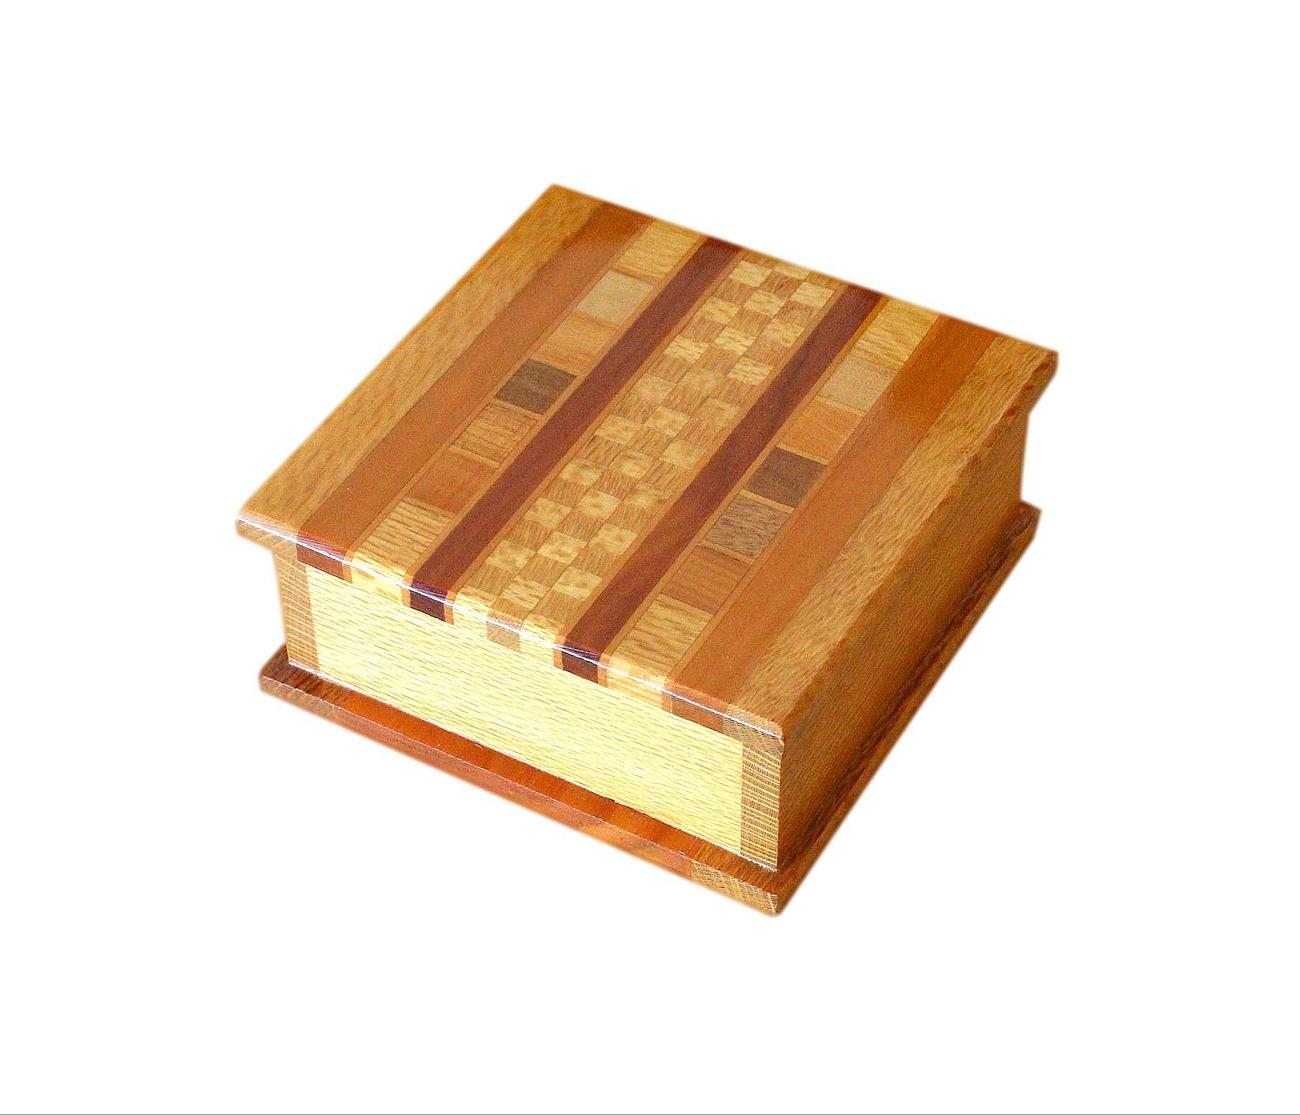 NZ_native_timbers_jewellery_box_4.jpg